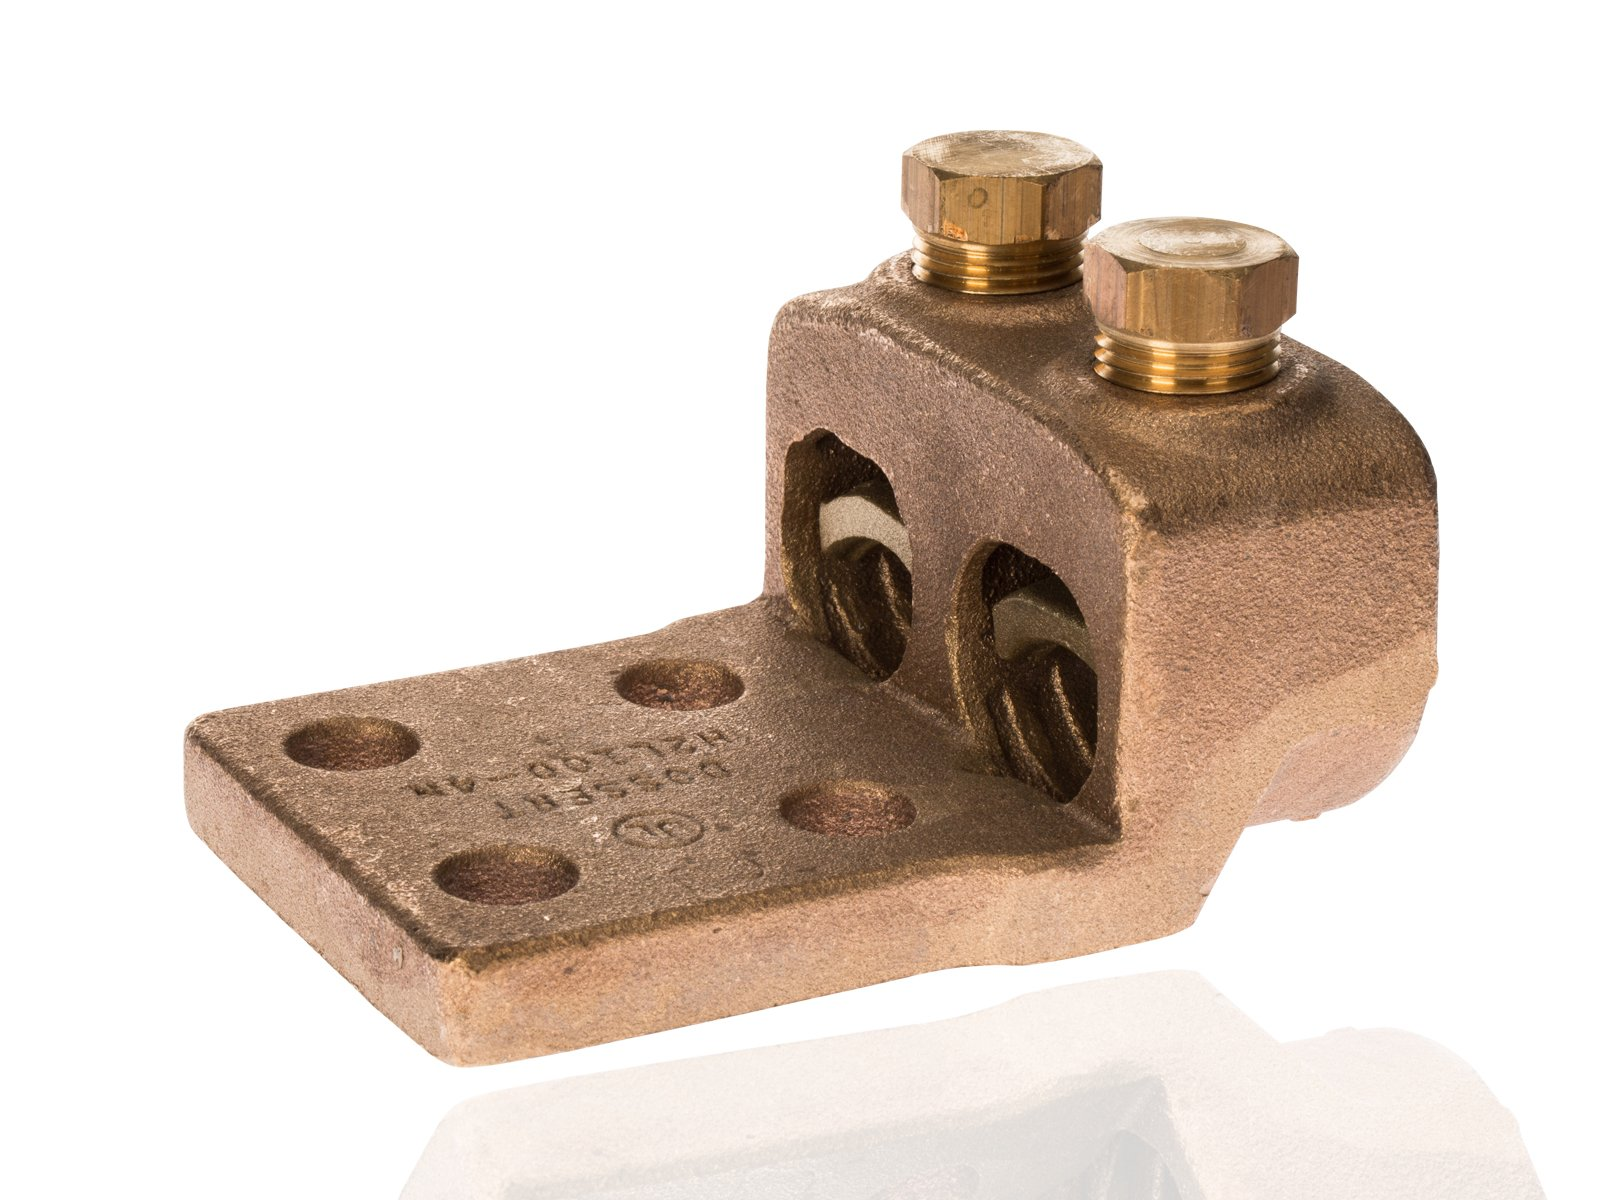 Split Bolt, Post and Tap Connector, Type TL Copper and Cast Bronze Terminal Lug, 750 MCM - 1000 MCM Wire Range, 1/2'' Bolt Hole Size, 4 Holes, 1300 Amp Nec, 3.875'' Width, 2'' Height, 5.5'' Length by NSI